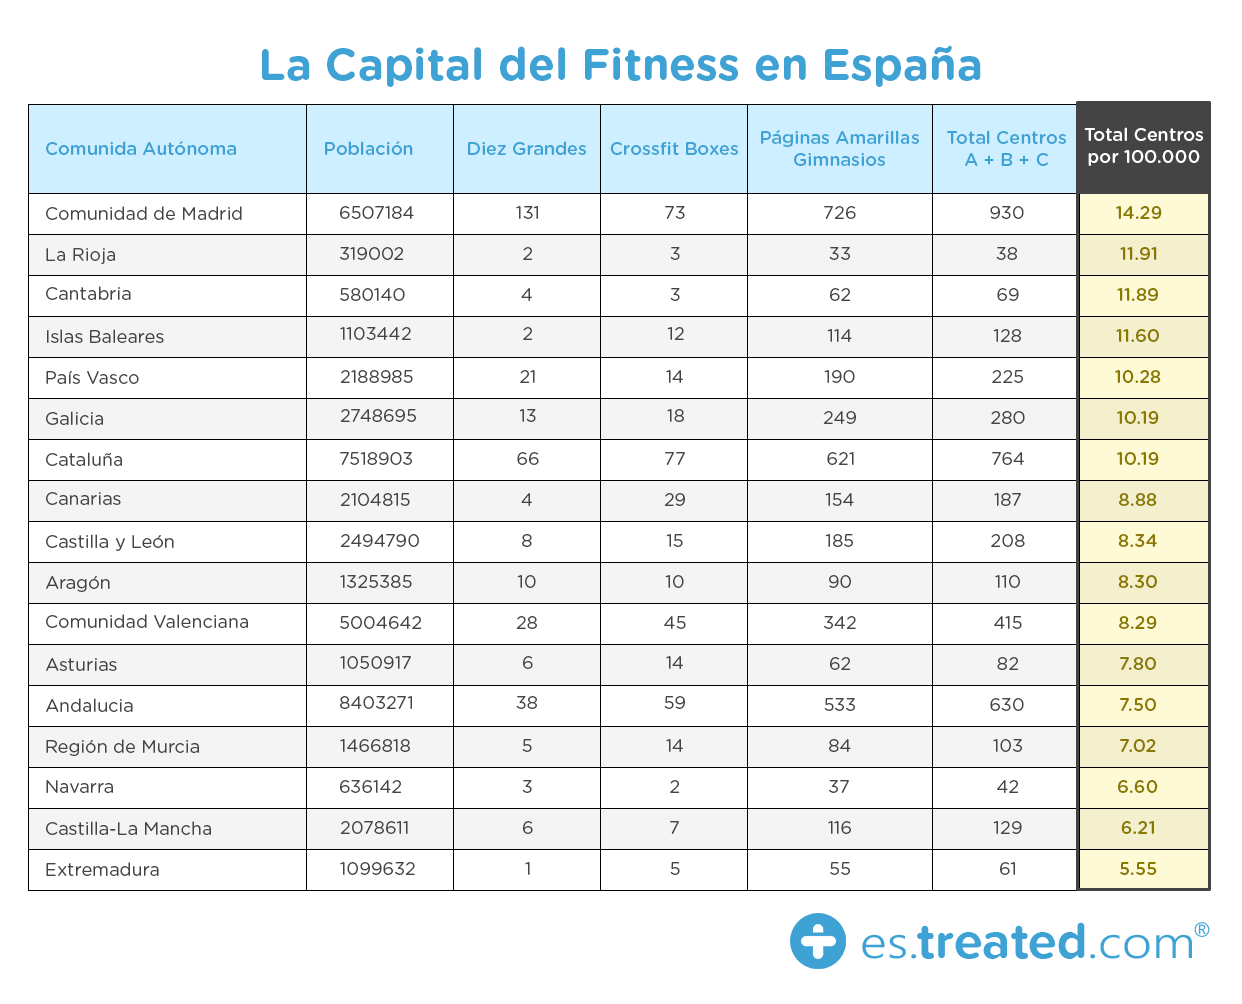 La Capital del Fitness en España